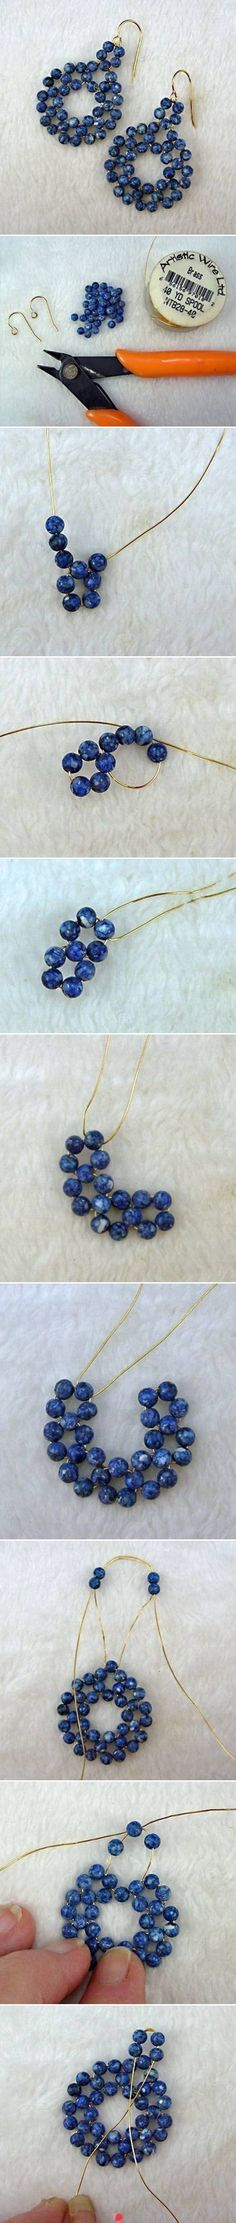 Love this tutorial! I can see it working as a focal piece for a necklace or as earrings. #cbloggers #beadlove #beading